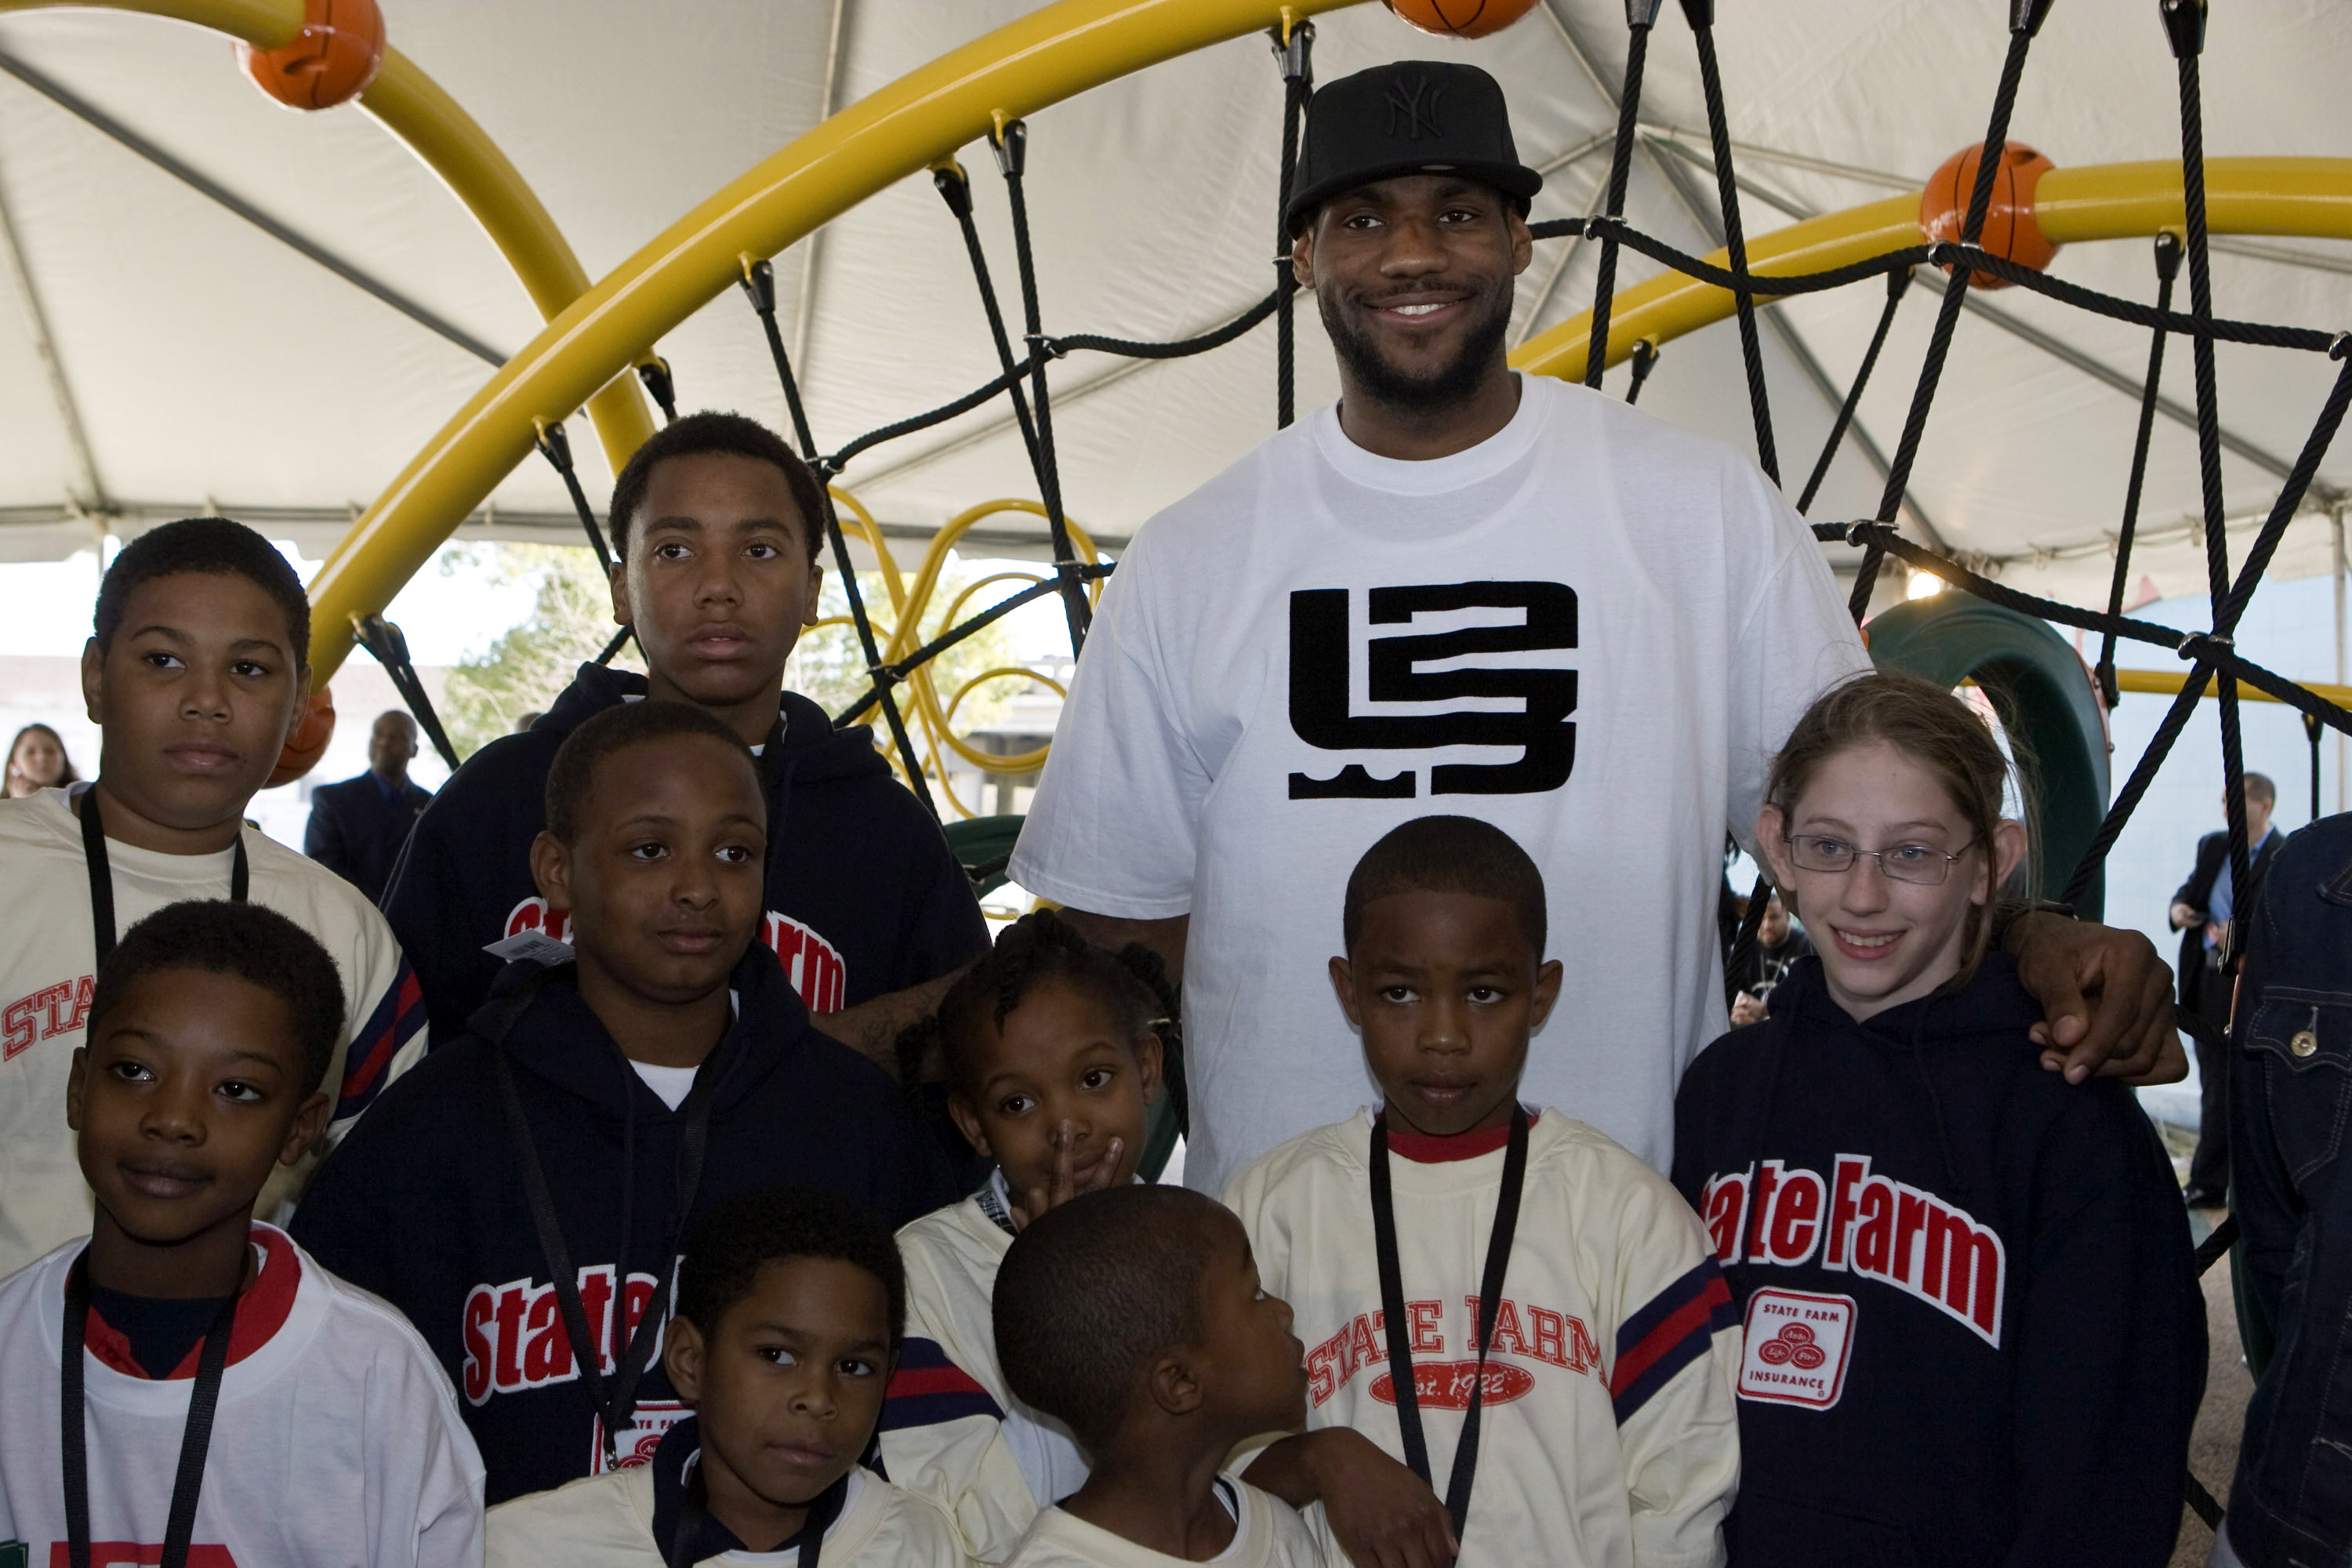 NEW ORLEANS - FEBRUARY 14:  LeBron James of the Cleveland Cavaliers poses with neighborhood children at a playground dedication by State Farm Insurance and the LeBron James Family Foundation at the St. Bernard Recreation Center February 14, 2008 in New Or